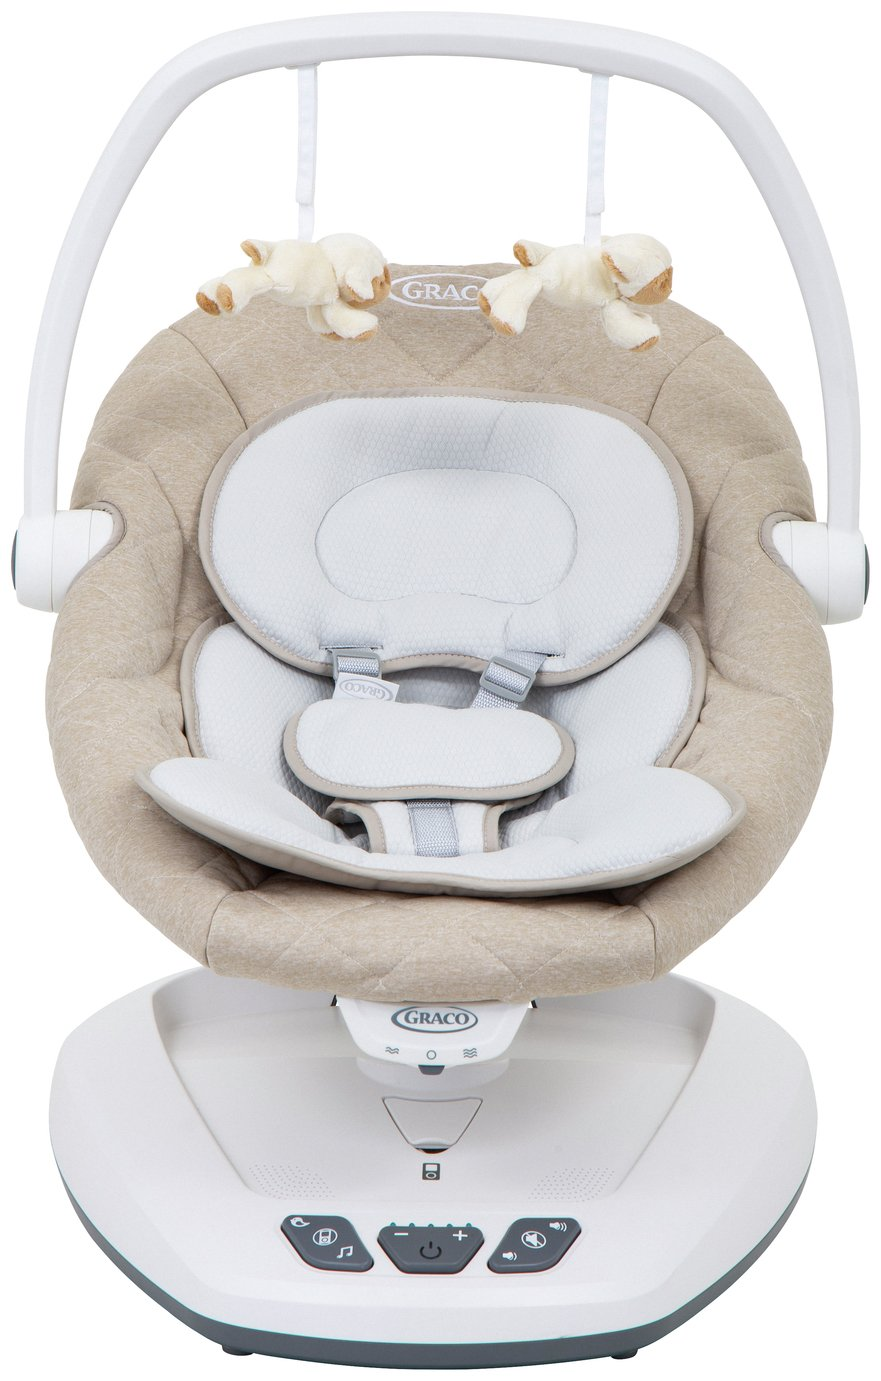 Graco Move with Me Soother Bouncer - Sparrow Best Price, Cheapest Prices